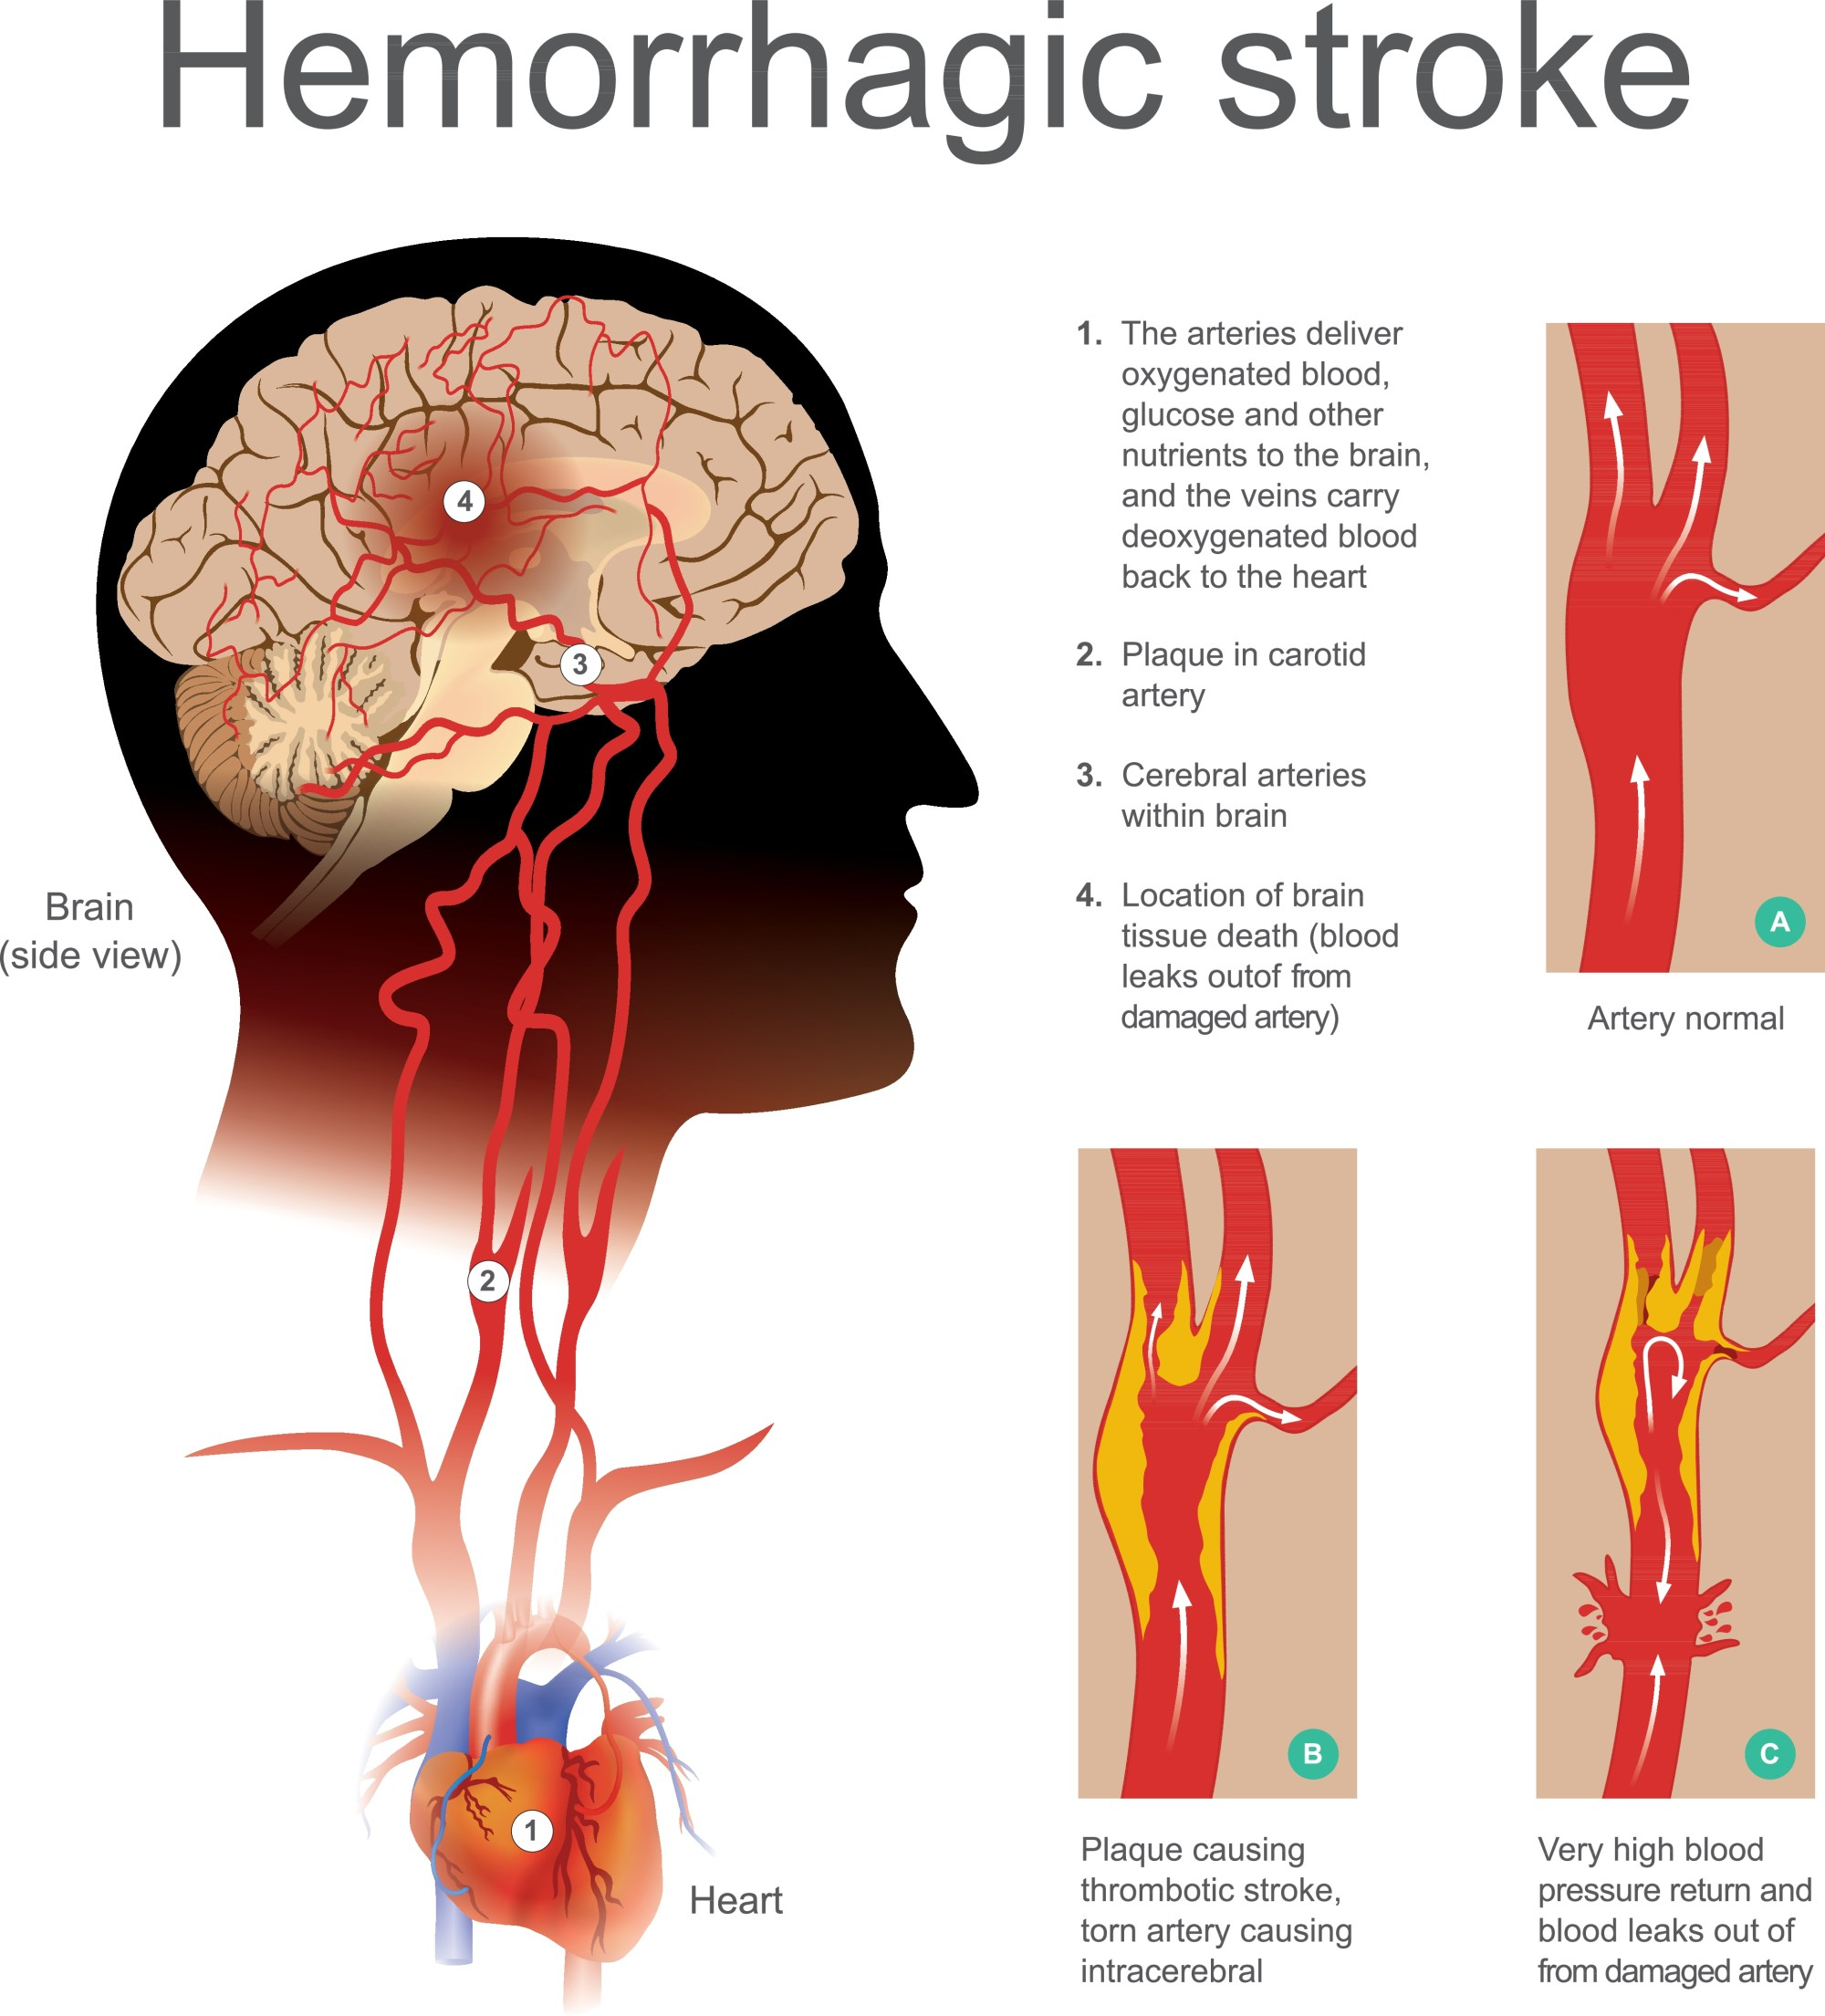 hight resolution of hemorrhagic strokes are caused by blood leaking into the brain this occurs when a weakened blood vessel ruptures and normally occur as a result of